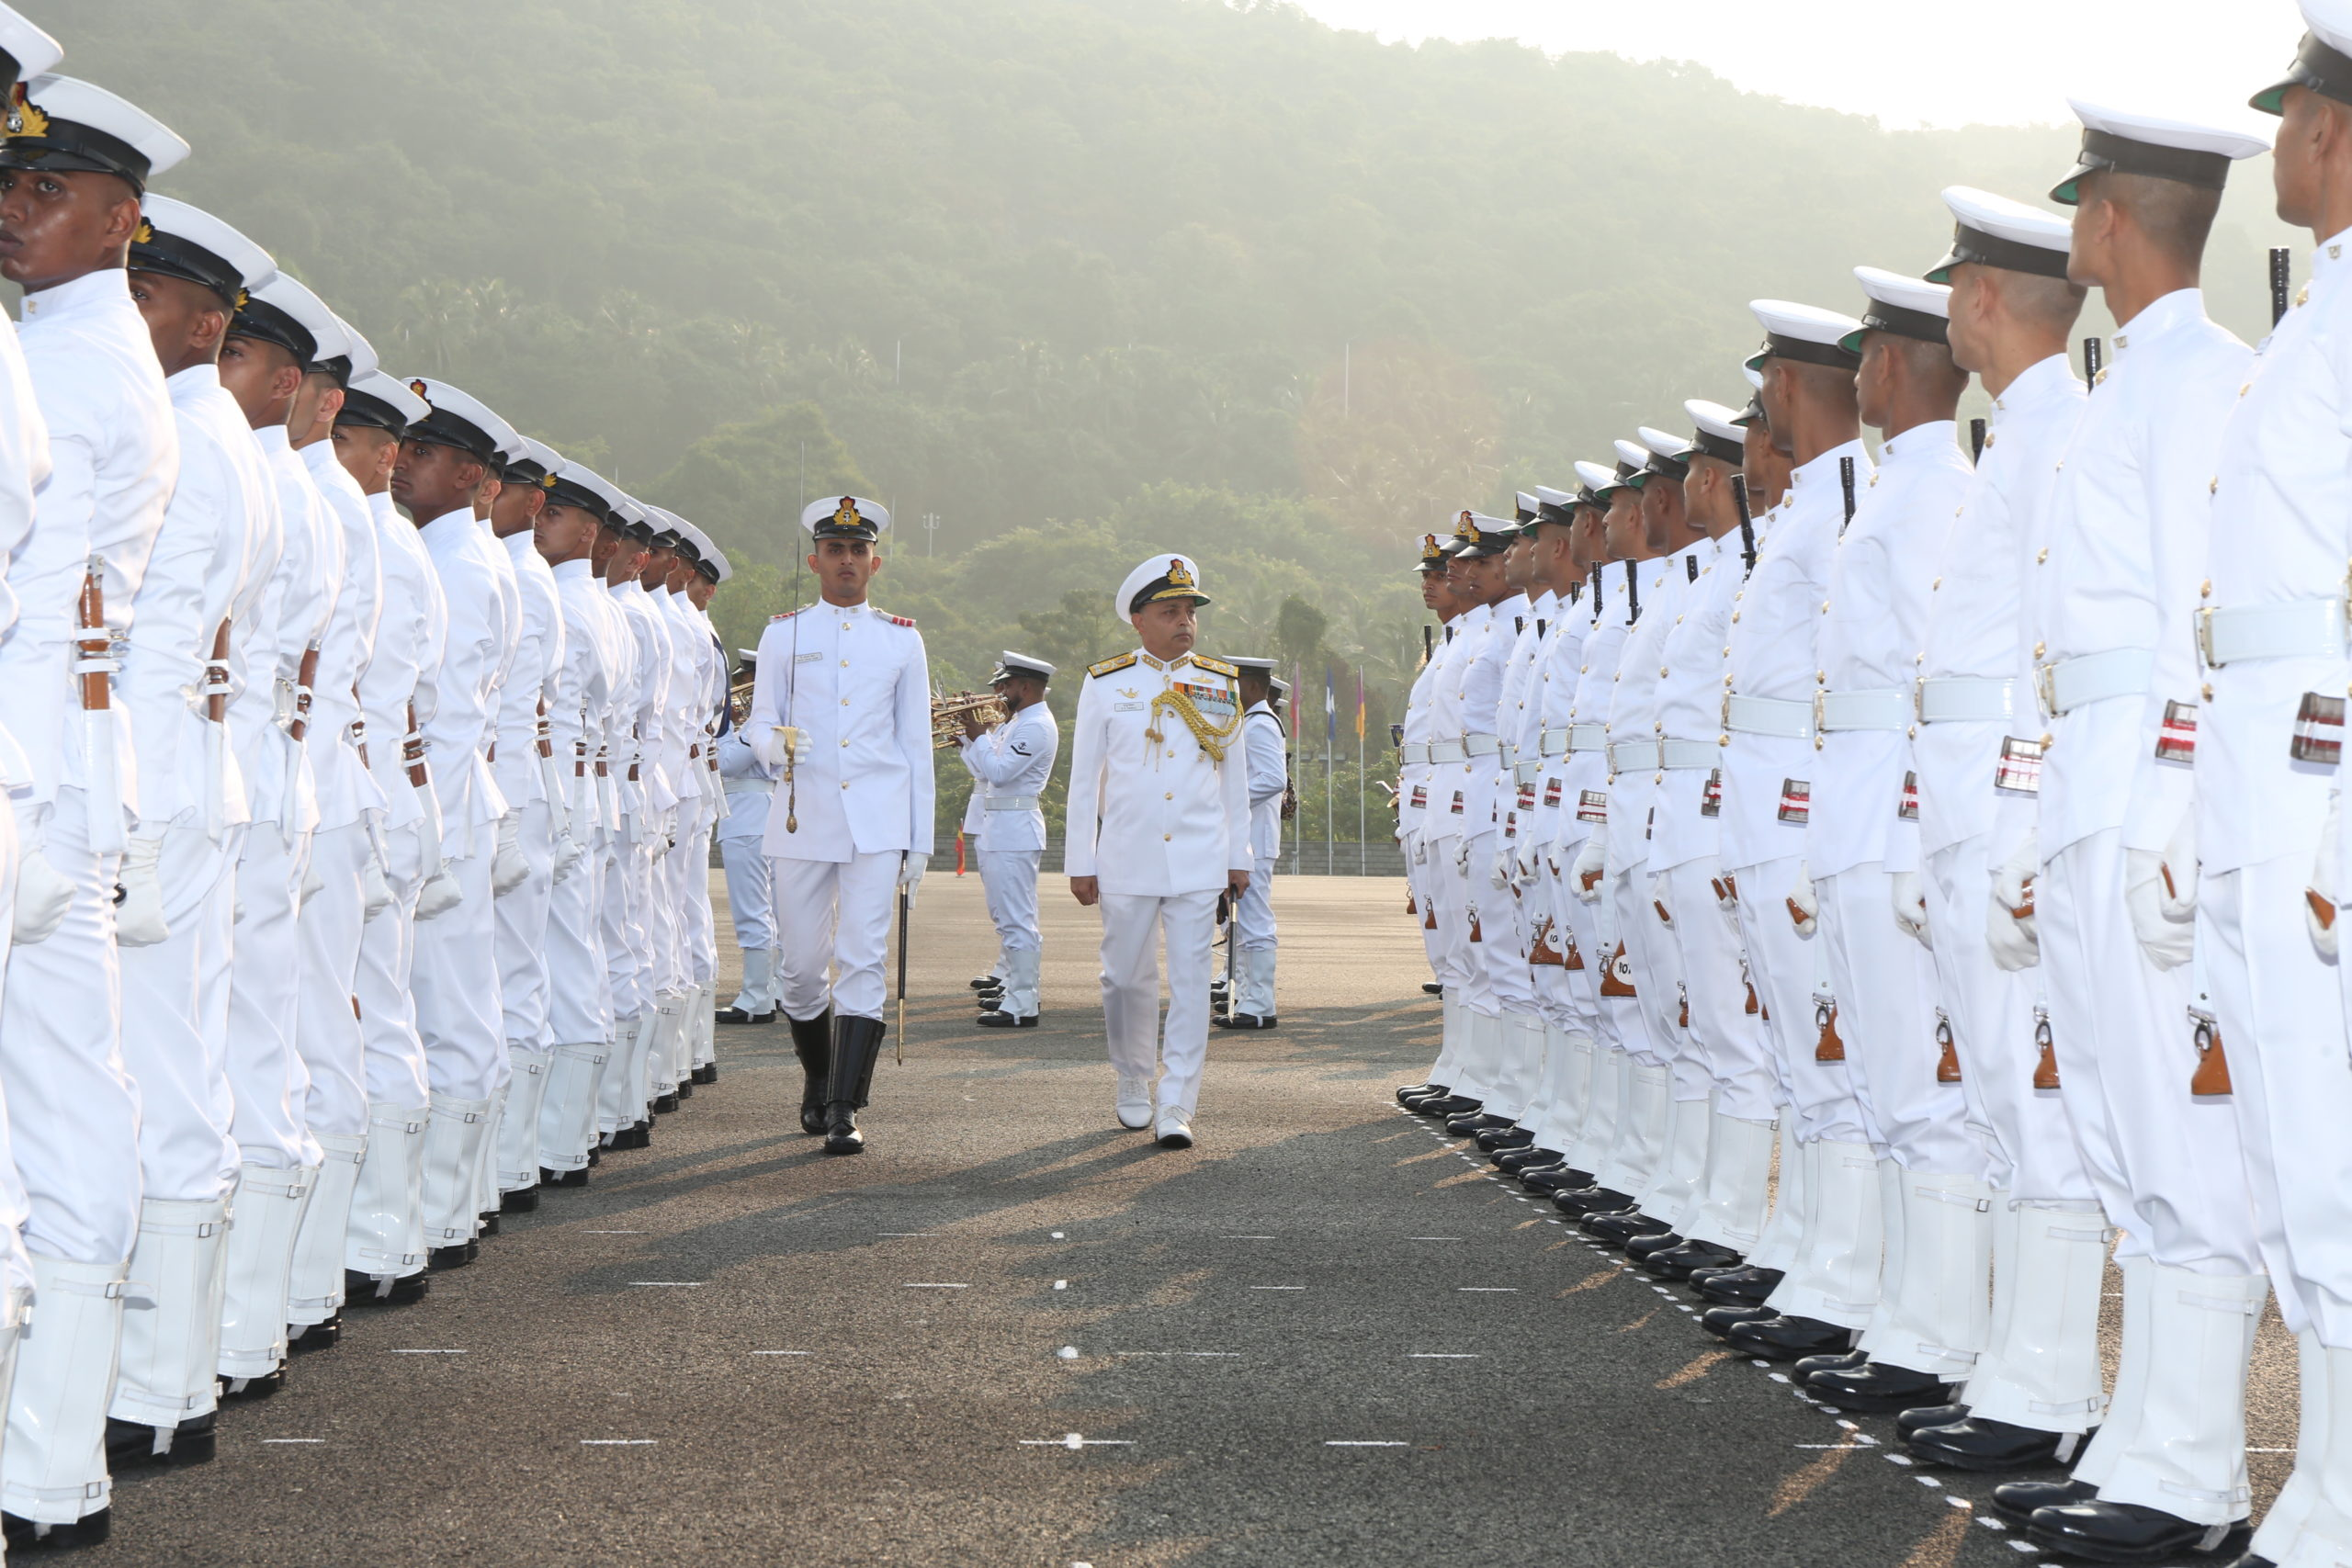 Vice Admiral Anil Kumar Chawla, PVSM, AVSM, NM, VSM, ADC, Flag Officer Commanding-in-Chief, Southern Naval Command, will be the Chief Guest for the Course Completion Ceremony.